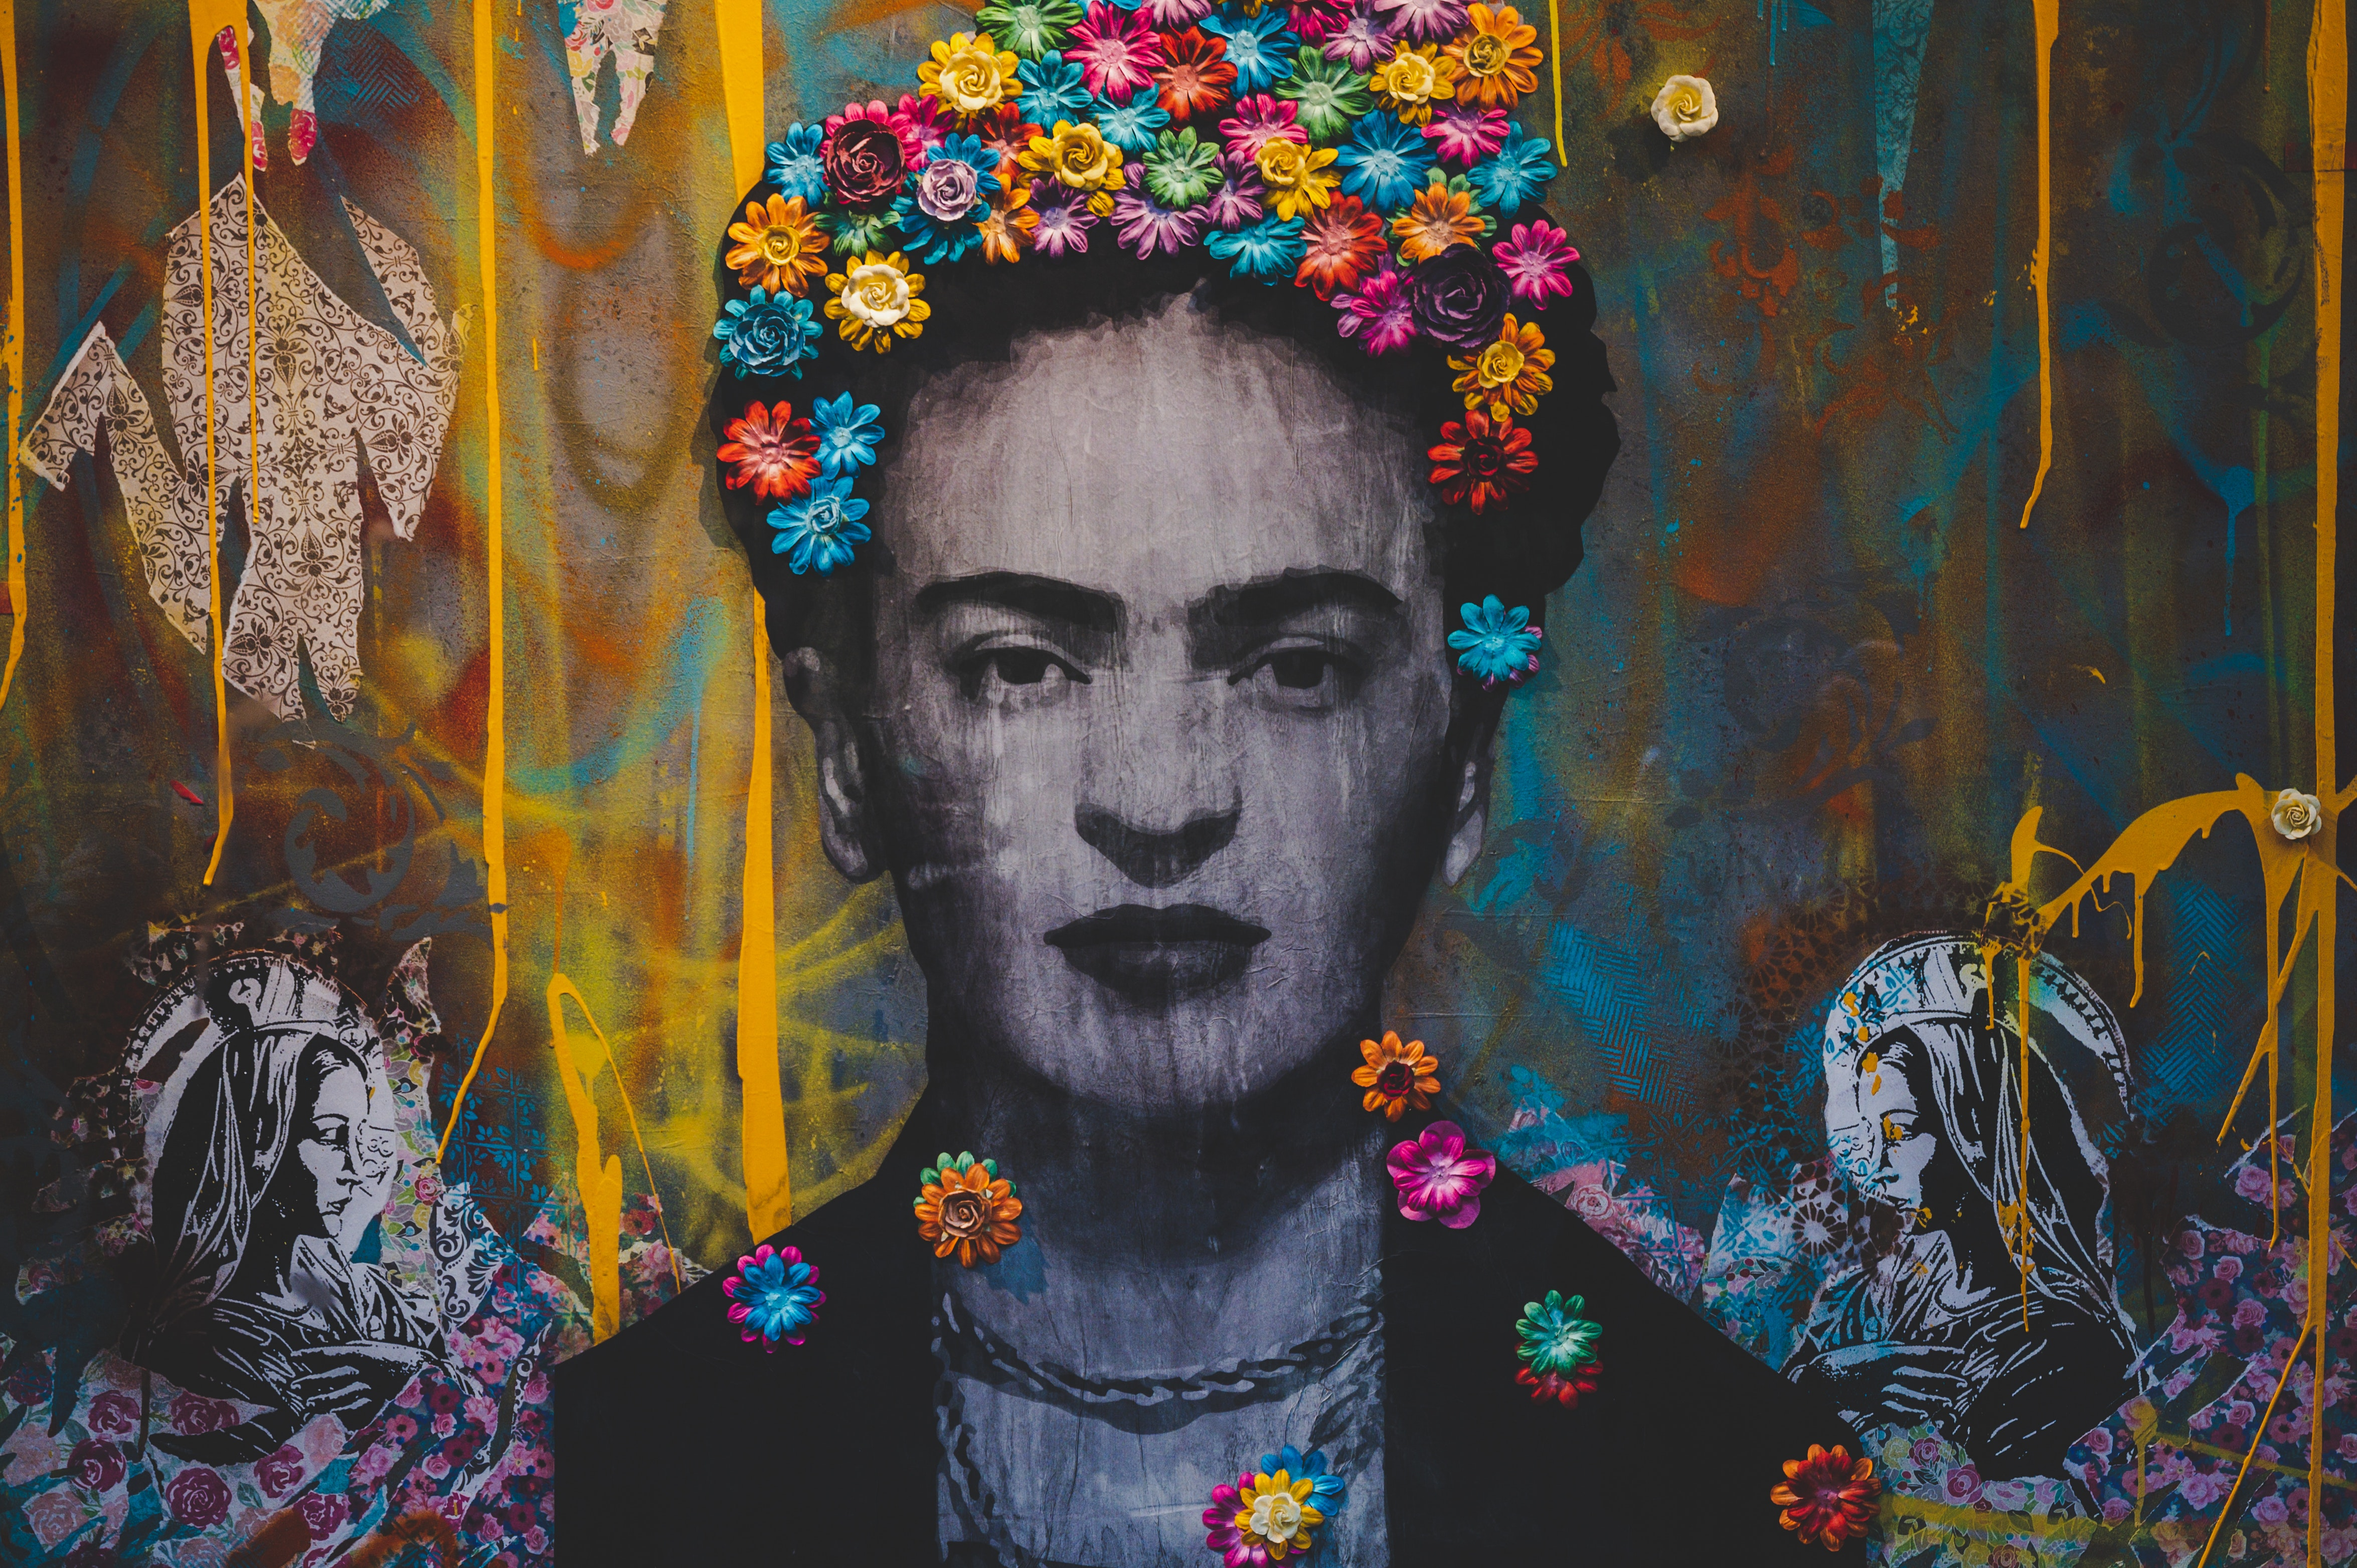 Graffiti portrait of Frida Kahlo with a crown of colorful flowers